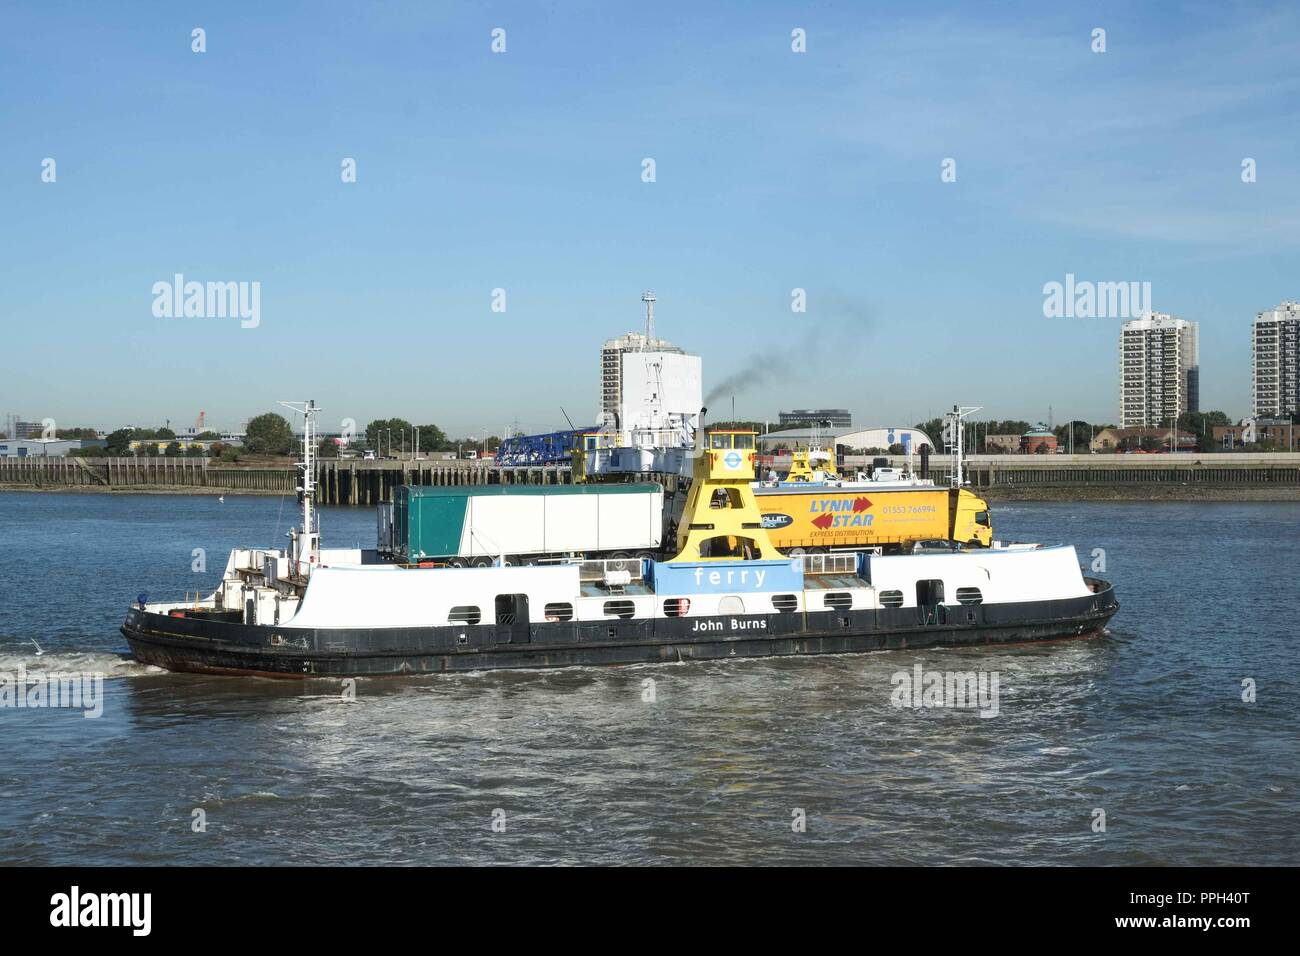 London, UK. 26th September 2018: TFL to close the Woolwich ferry  from 6th October 2018 until late December for pier improvement works. The Woolwich ferry carries hundreds of cars, trucks, cyclists and pedestrians over the river every day. Credit: Claire Doherty/Alamy Live News Stock Photo